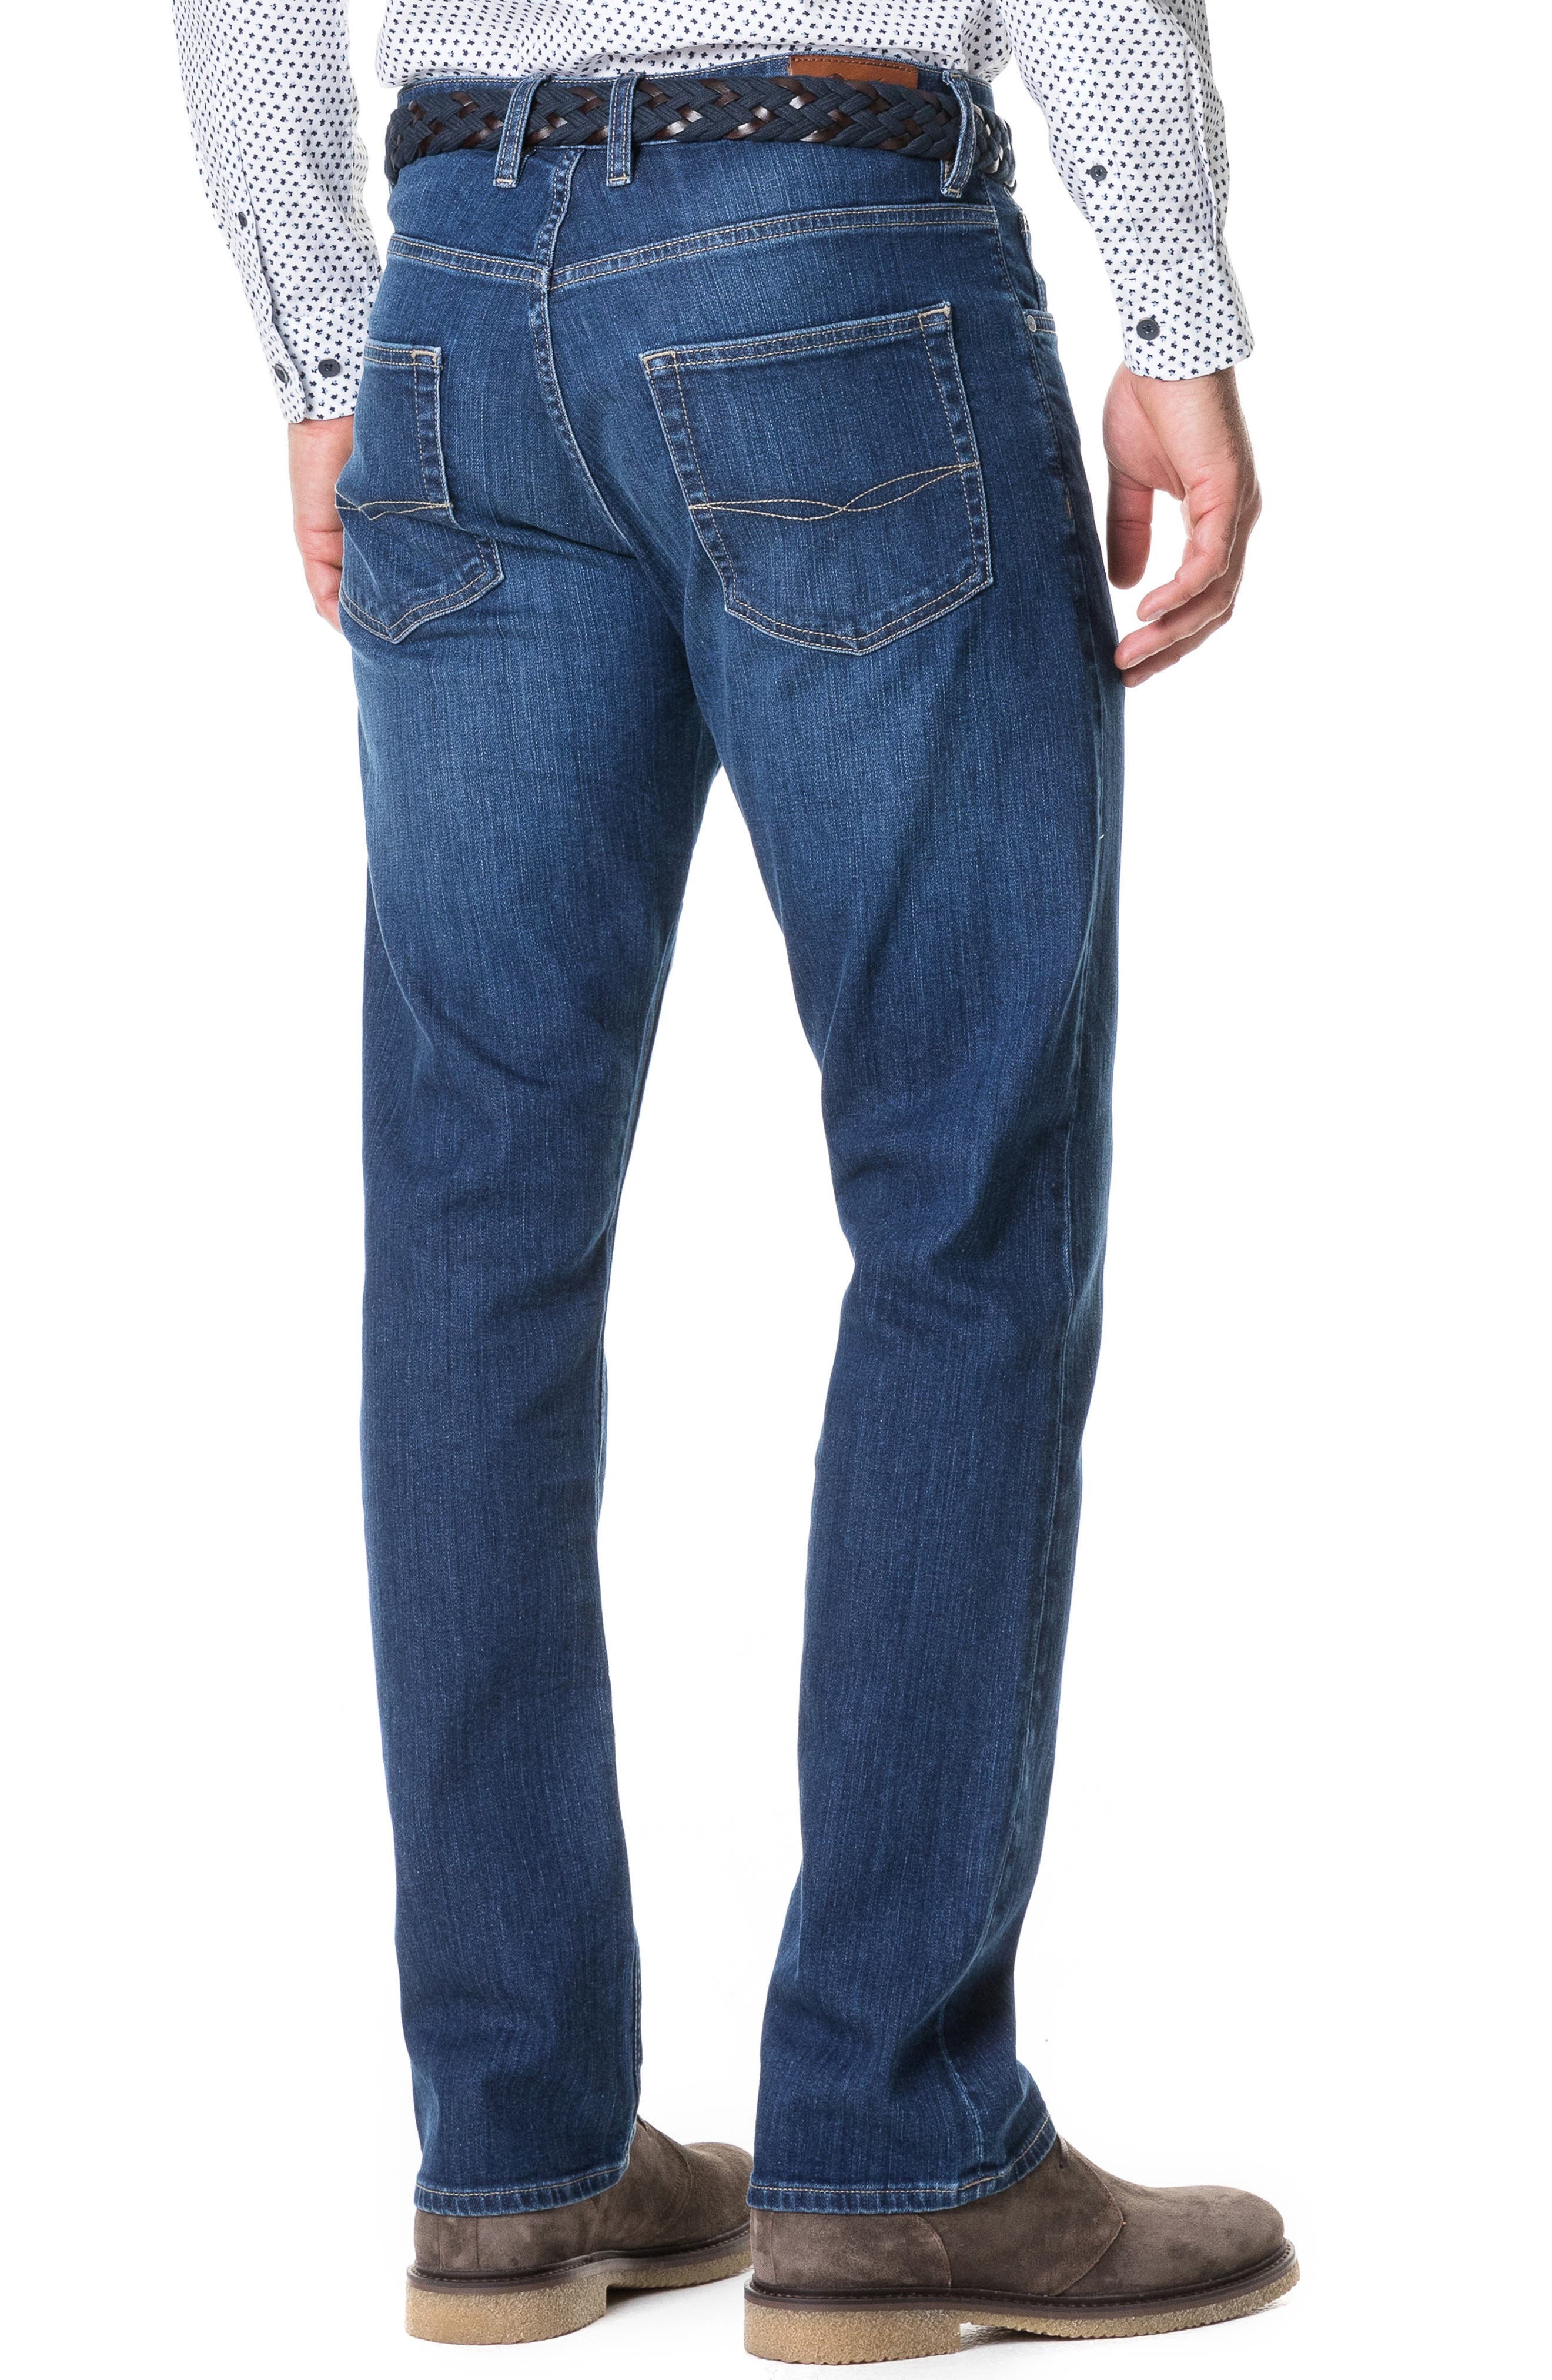 Byron Relaxed Fit Jeans,                             Alternate thumbnail 2, color,                             DENIM